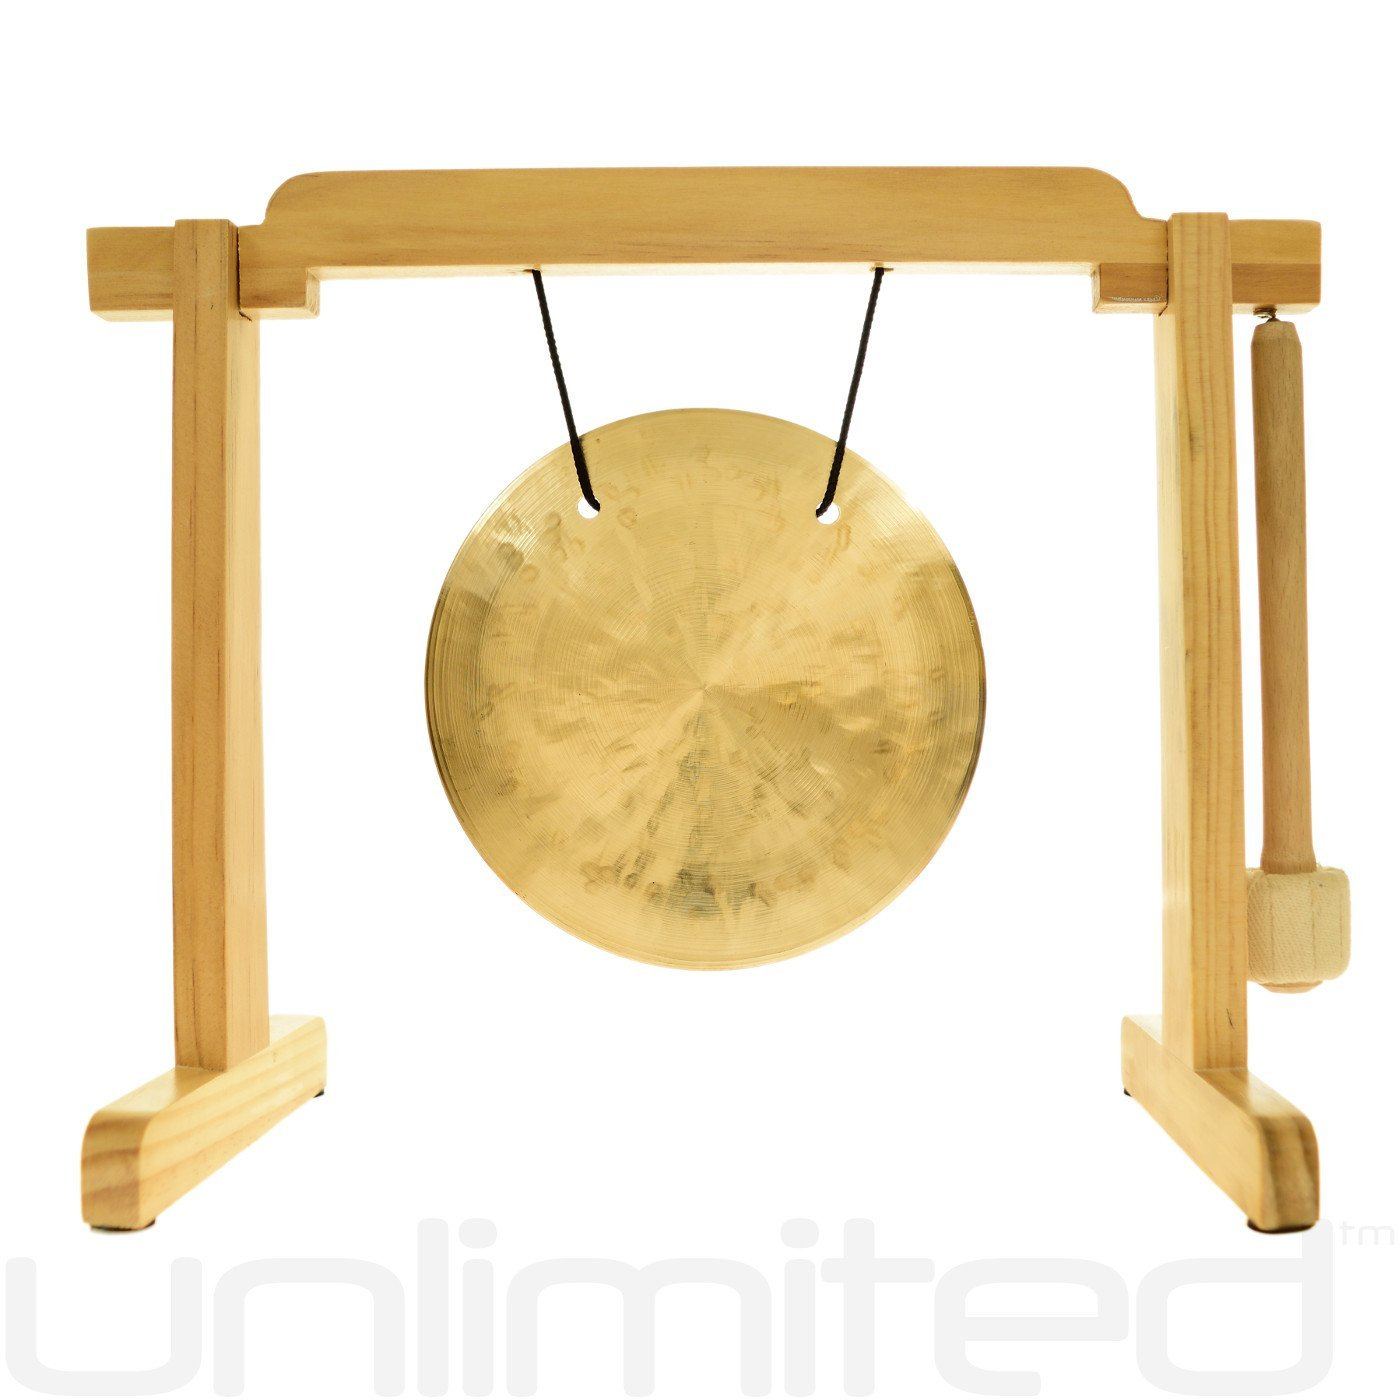 6'' to 7'' Gongs on the Tiny Atlas Stand - Natural